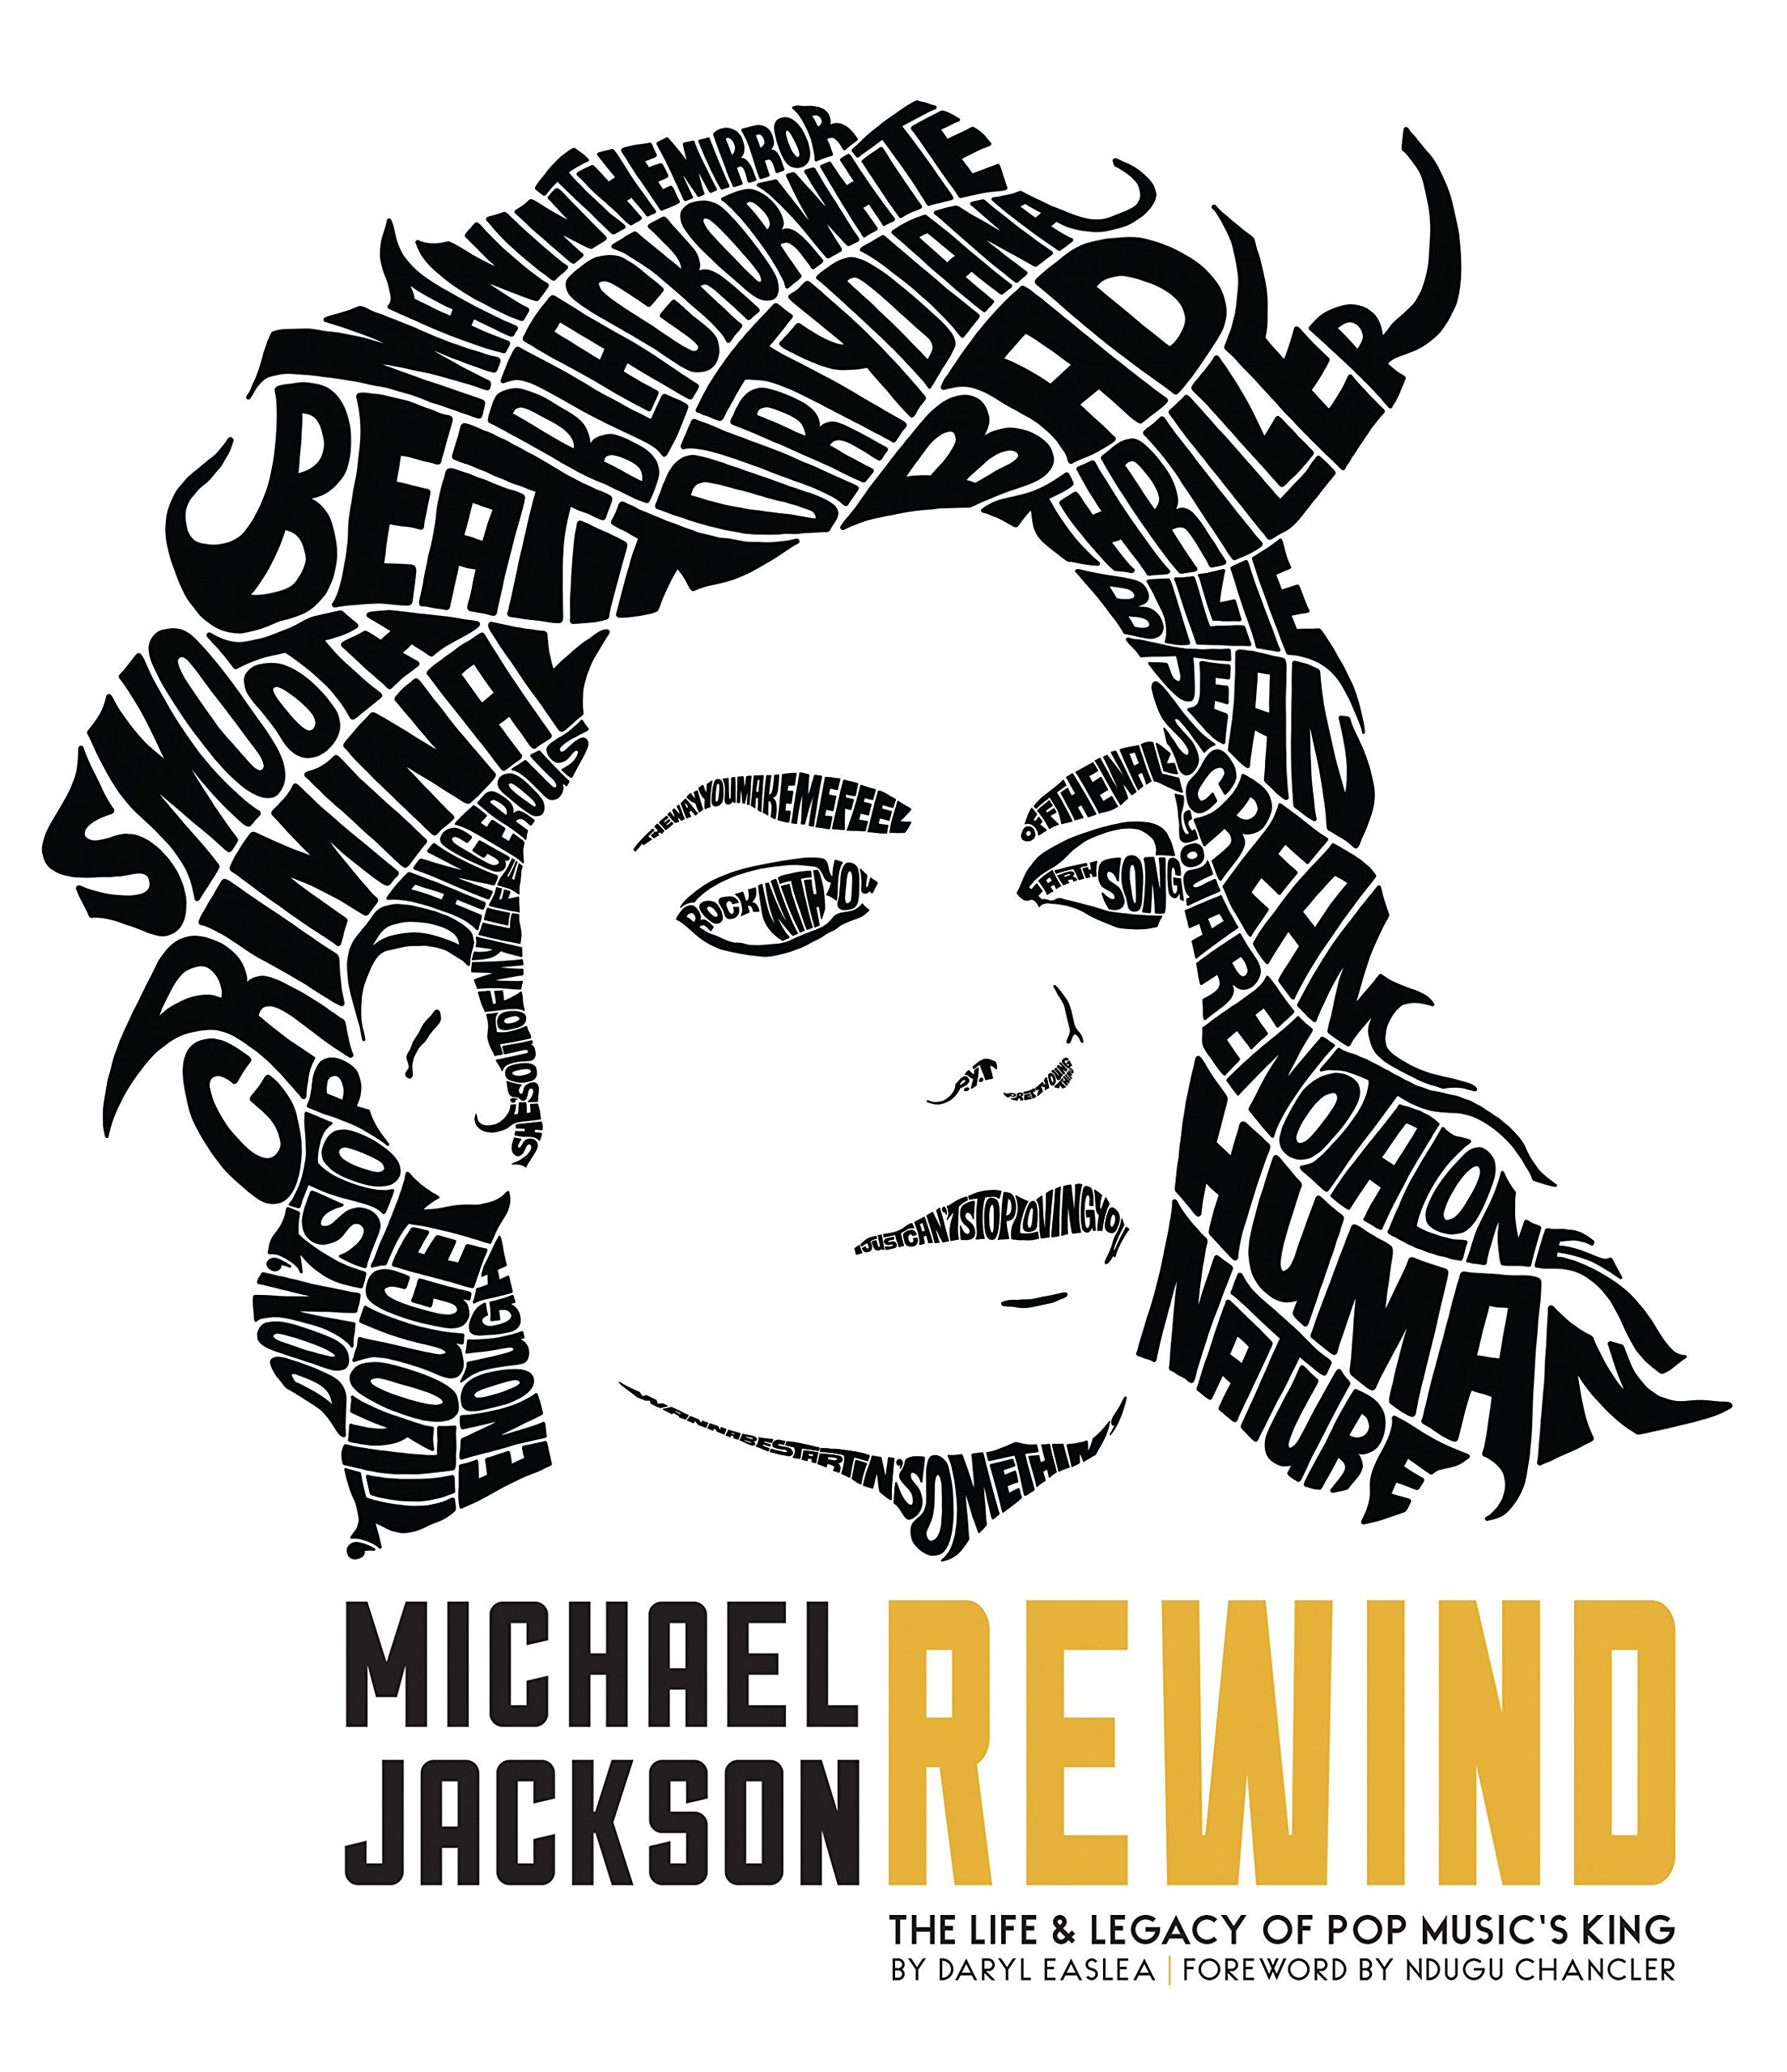 The Life and Legacy of Pop Musics King Michael Jackson Rewind